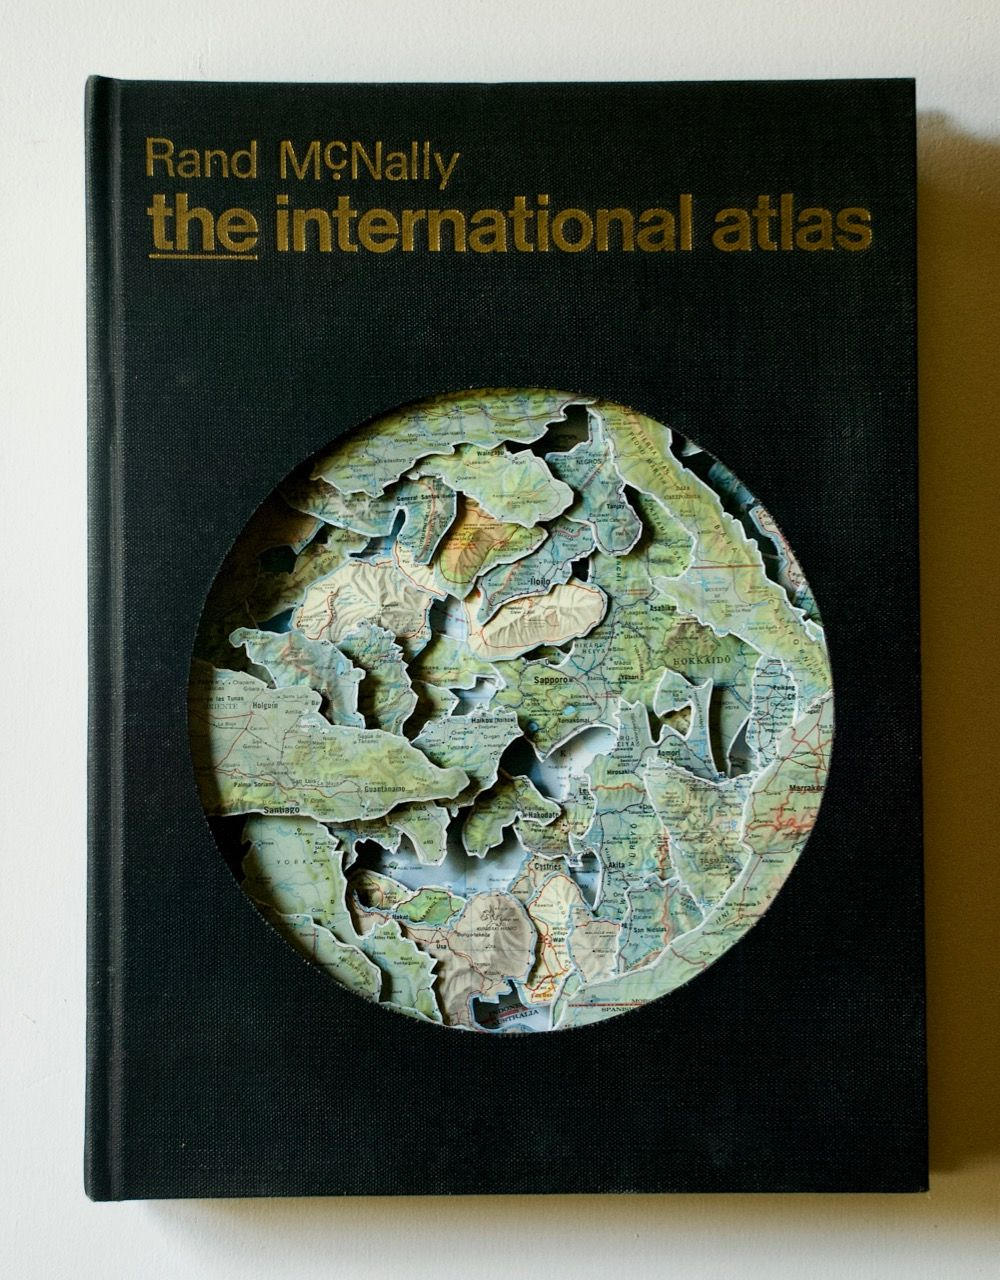 TONY DAGRADI, The International Atlas, 2020